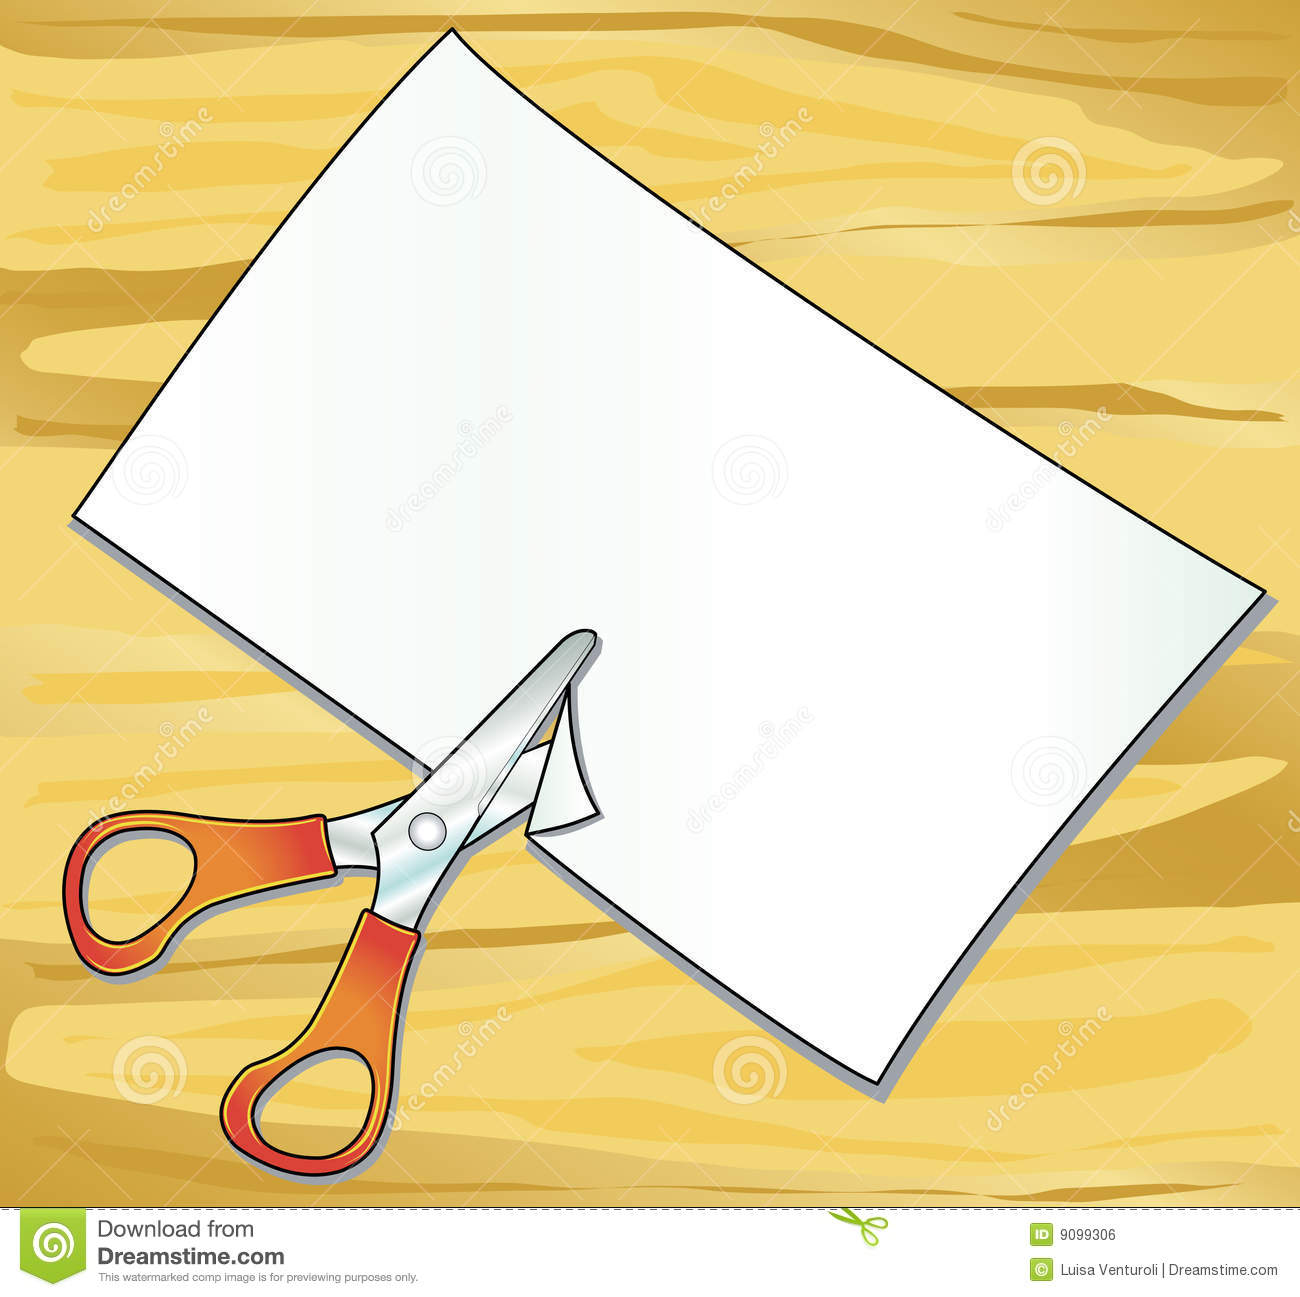 ... table on which are supported scissors and cut a sheet of paper